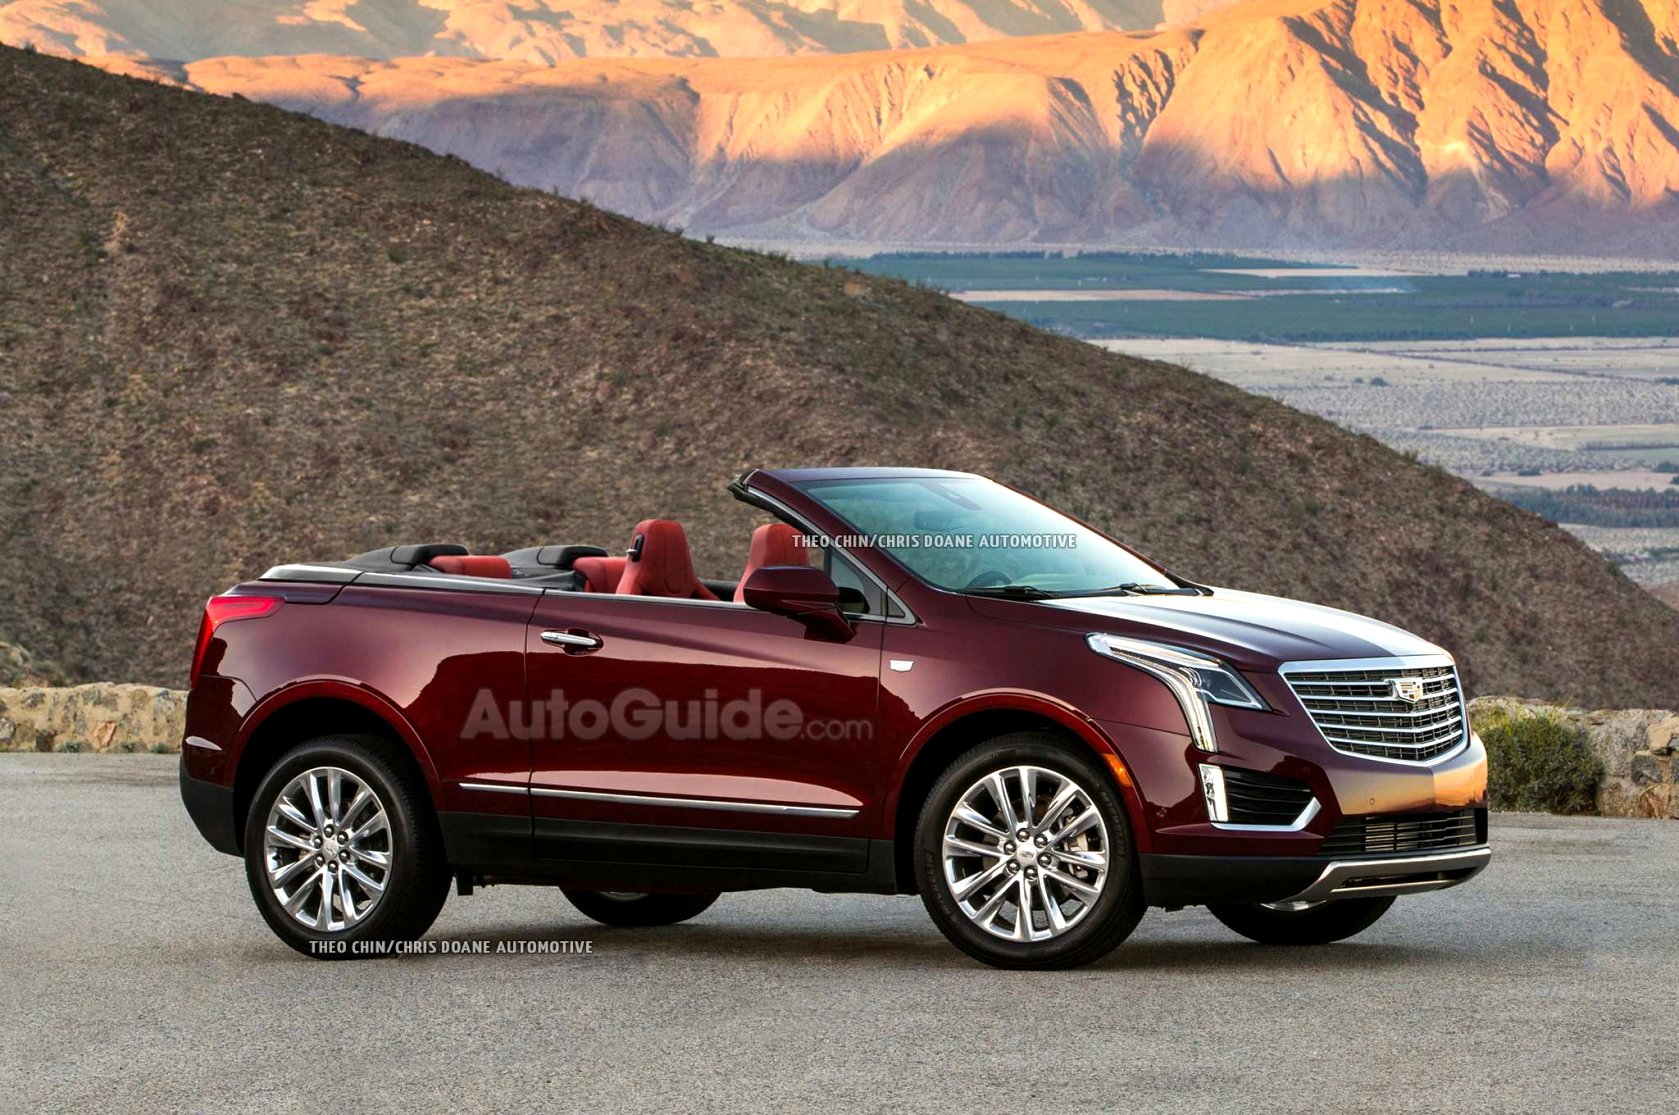 cadillac convertible 2020 Ratings